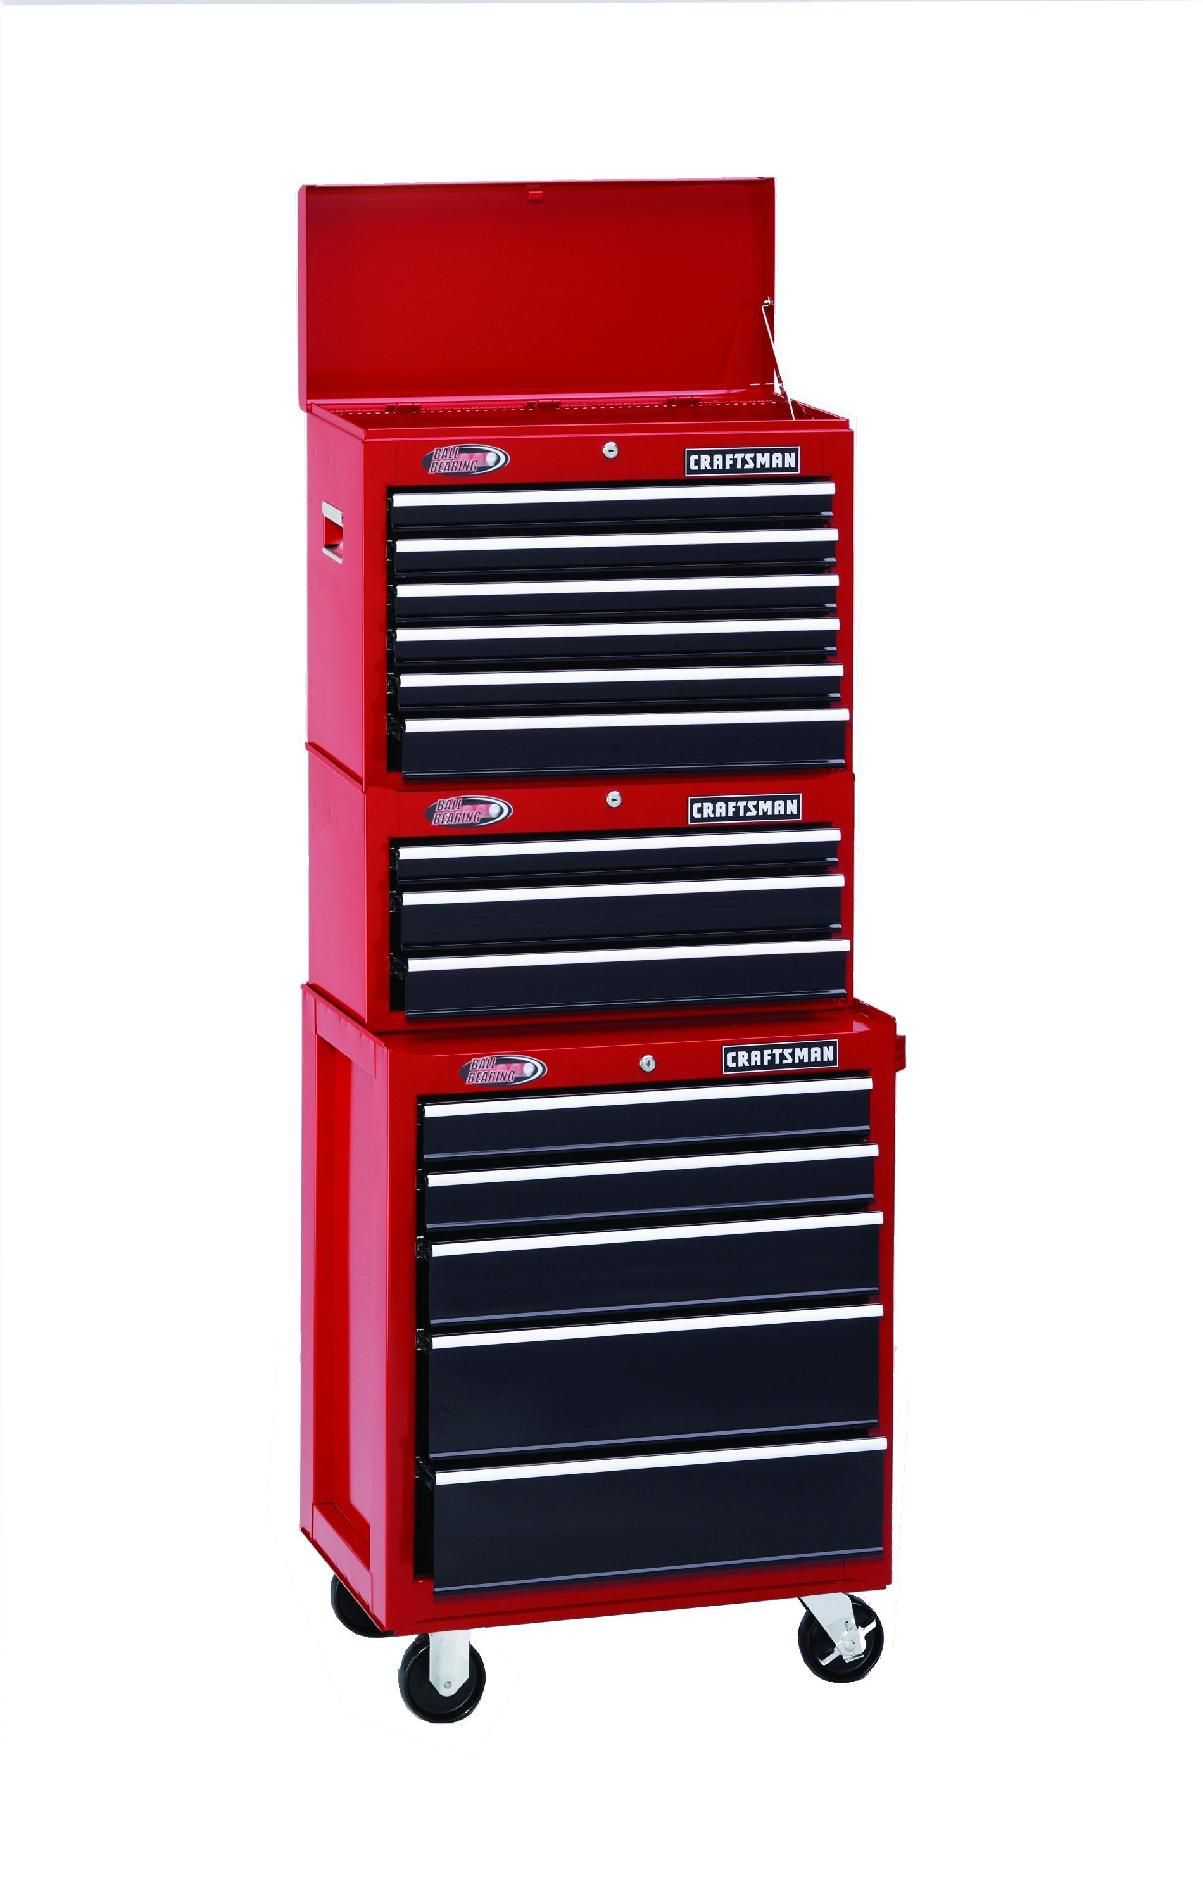 Craftsman-14 Drawer 26 in. Ball Bearing Combo - Red/Black - Each Item Sold Separately